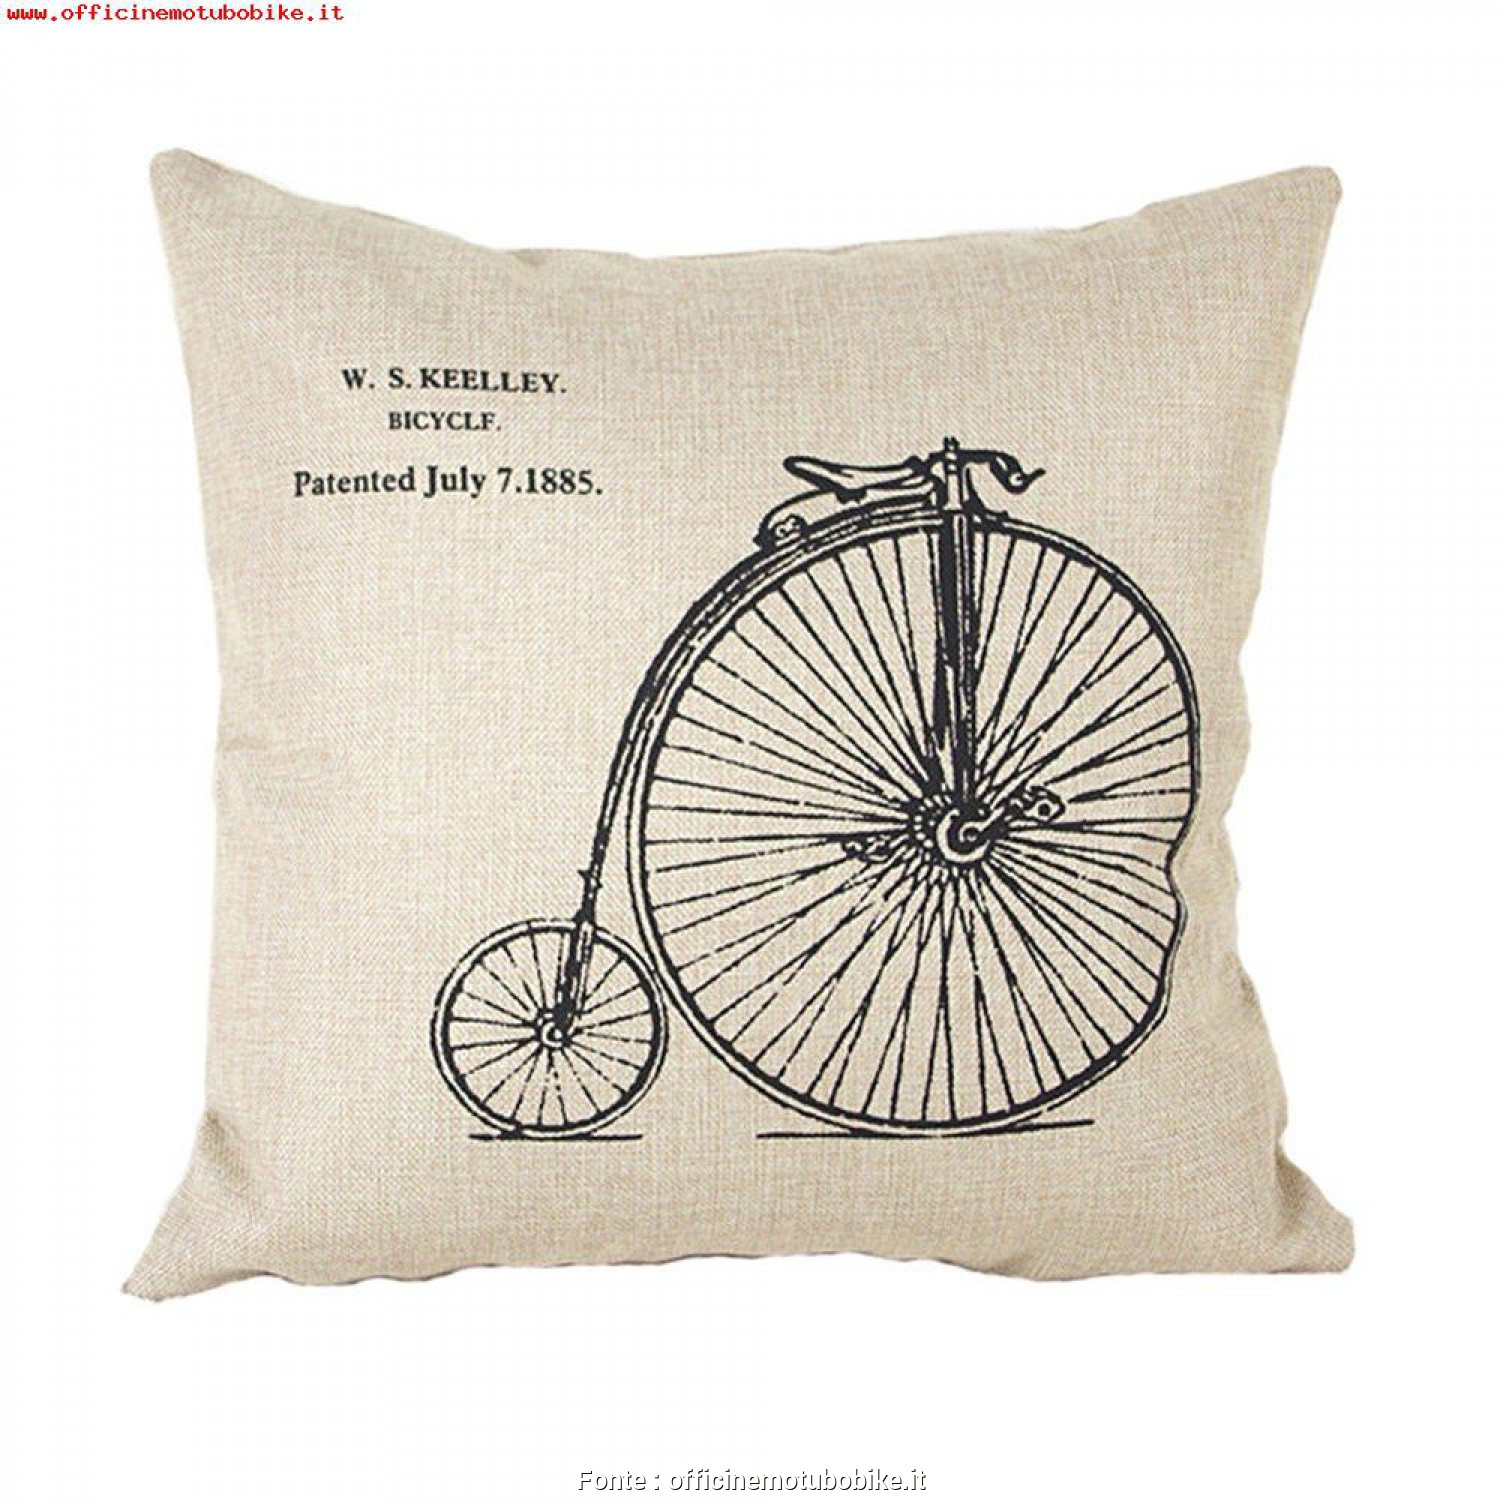 Federe Cuscini Grandi Divano, Superiore Ineguagliabile Luxbon-Cotton Lino Throw Pillow Covers Cuscino Decorativo Federa Bike, Ruota Grandi E Piccole